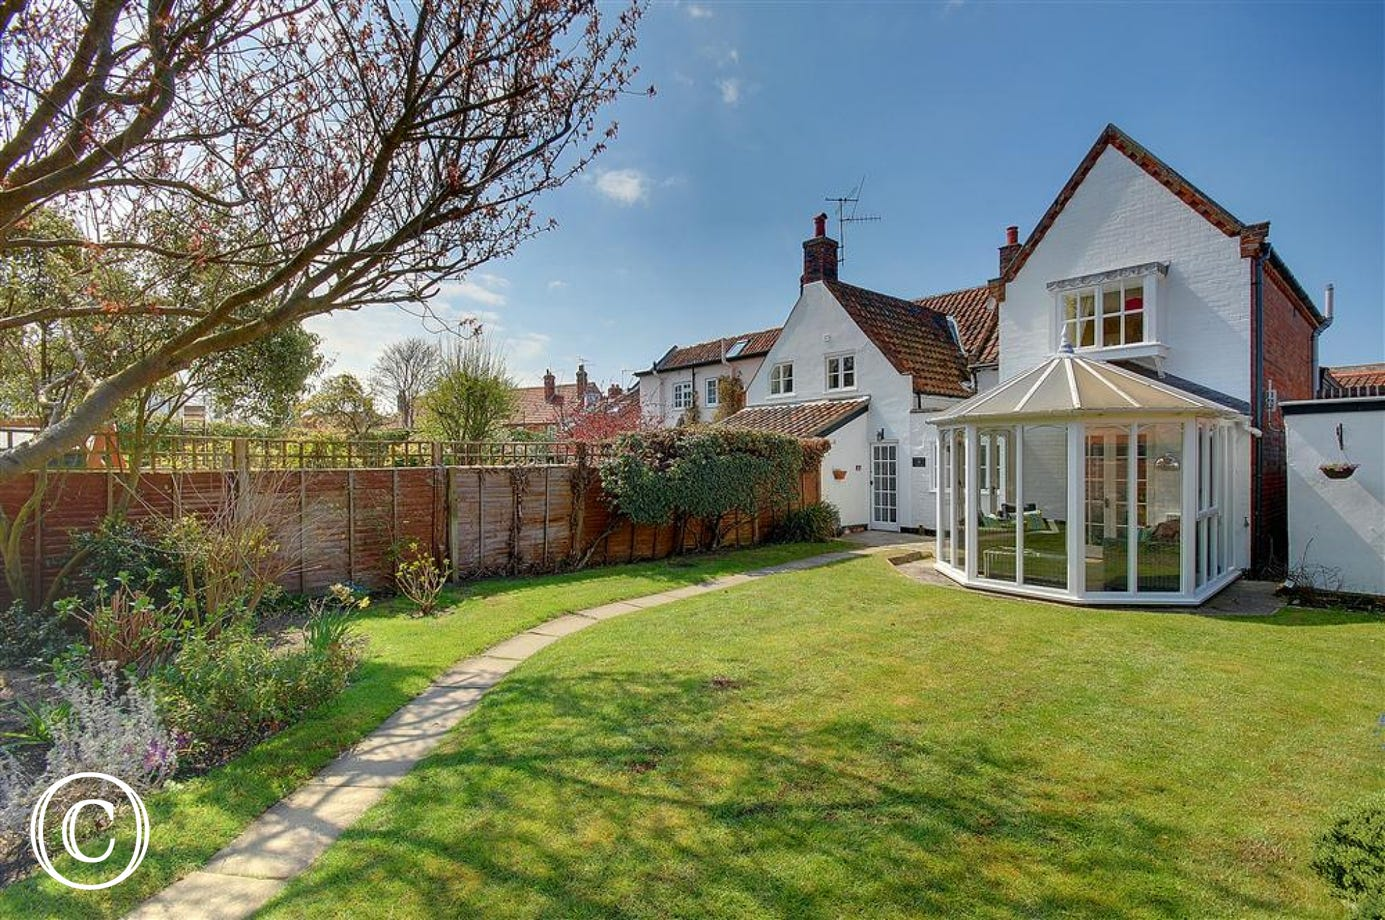 Church Farm Cottage resides in Aldeburgh and can be accessed from the Parish Church.